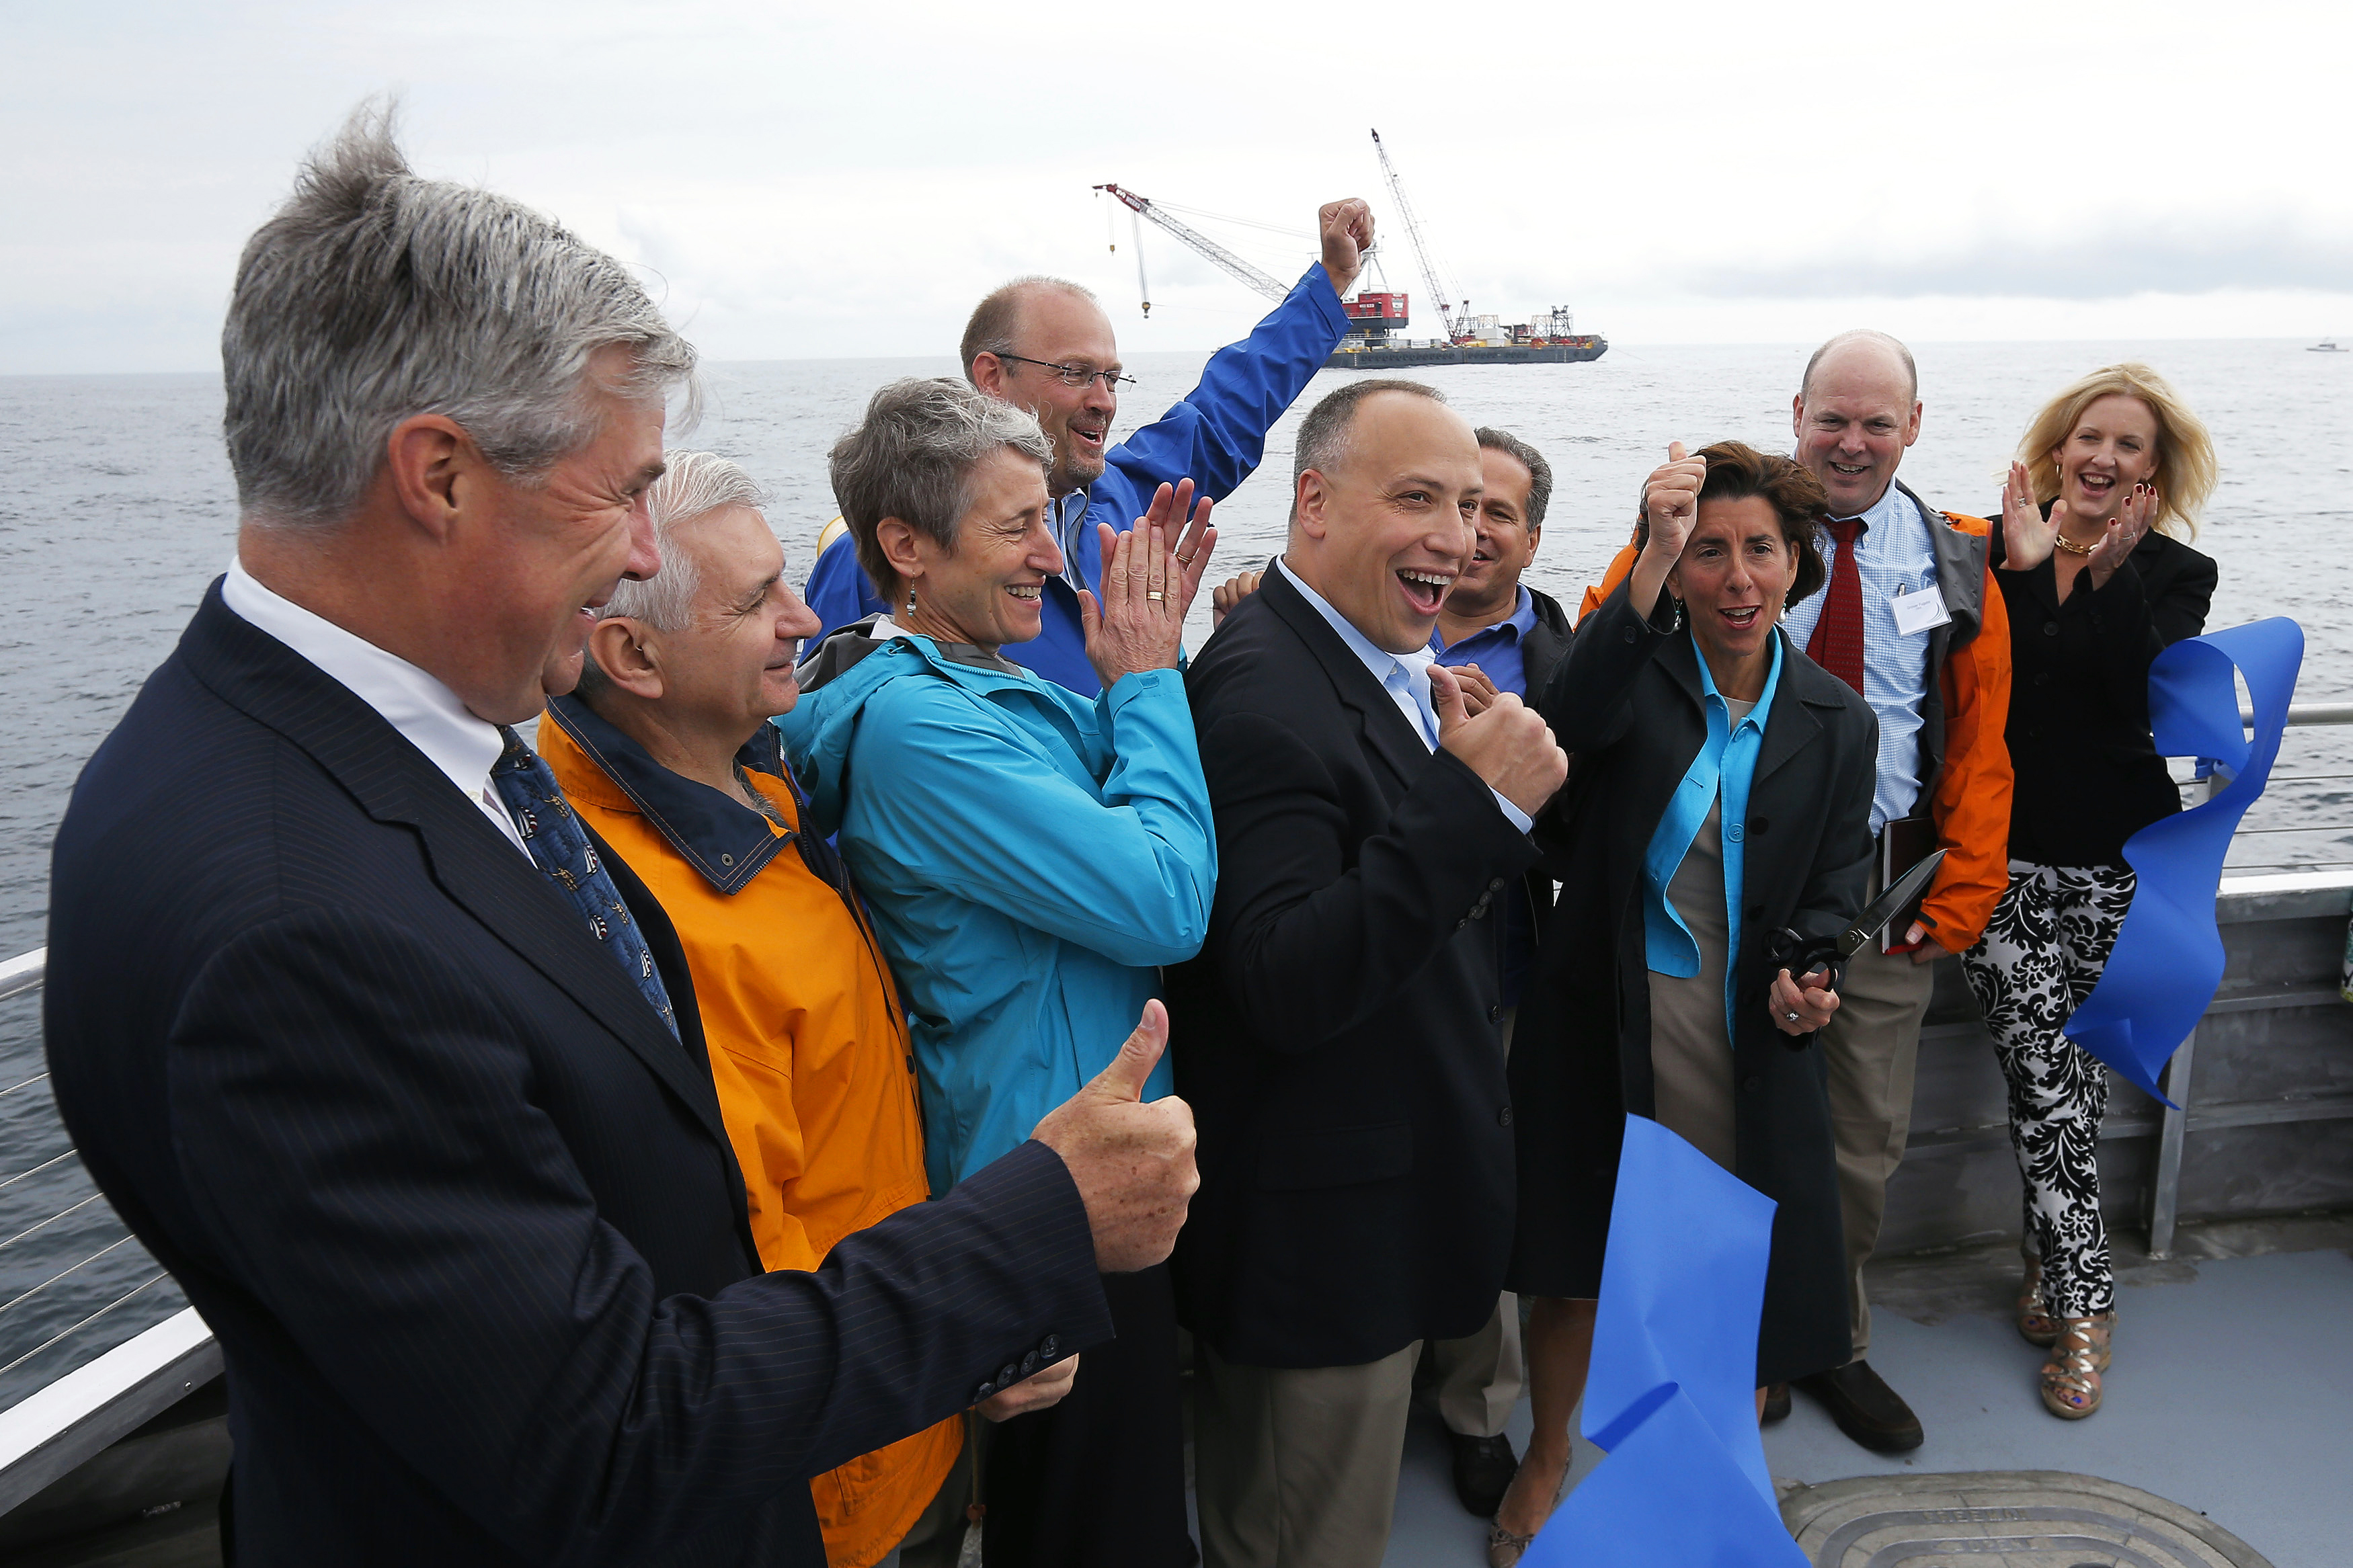 Elected officials and Deepwater Wind executives cheer during a ceremony to mark the installation of the first support jacket for a wind farm in the waters of the Atlantic Ocean off Block Island